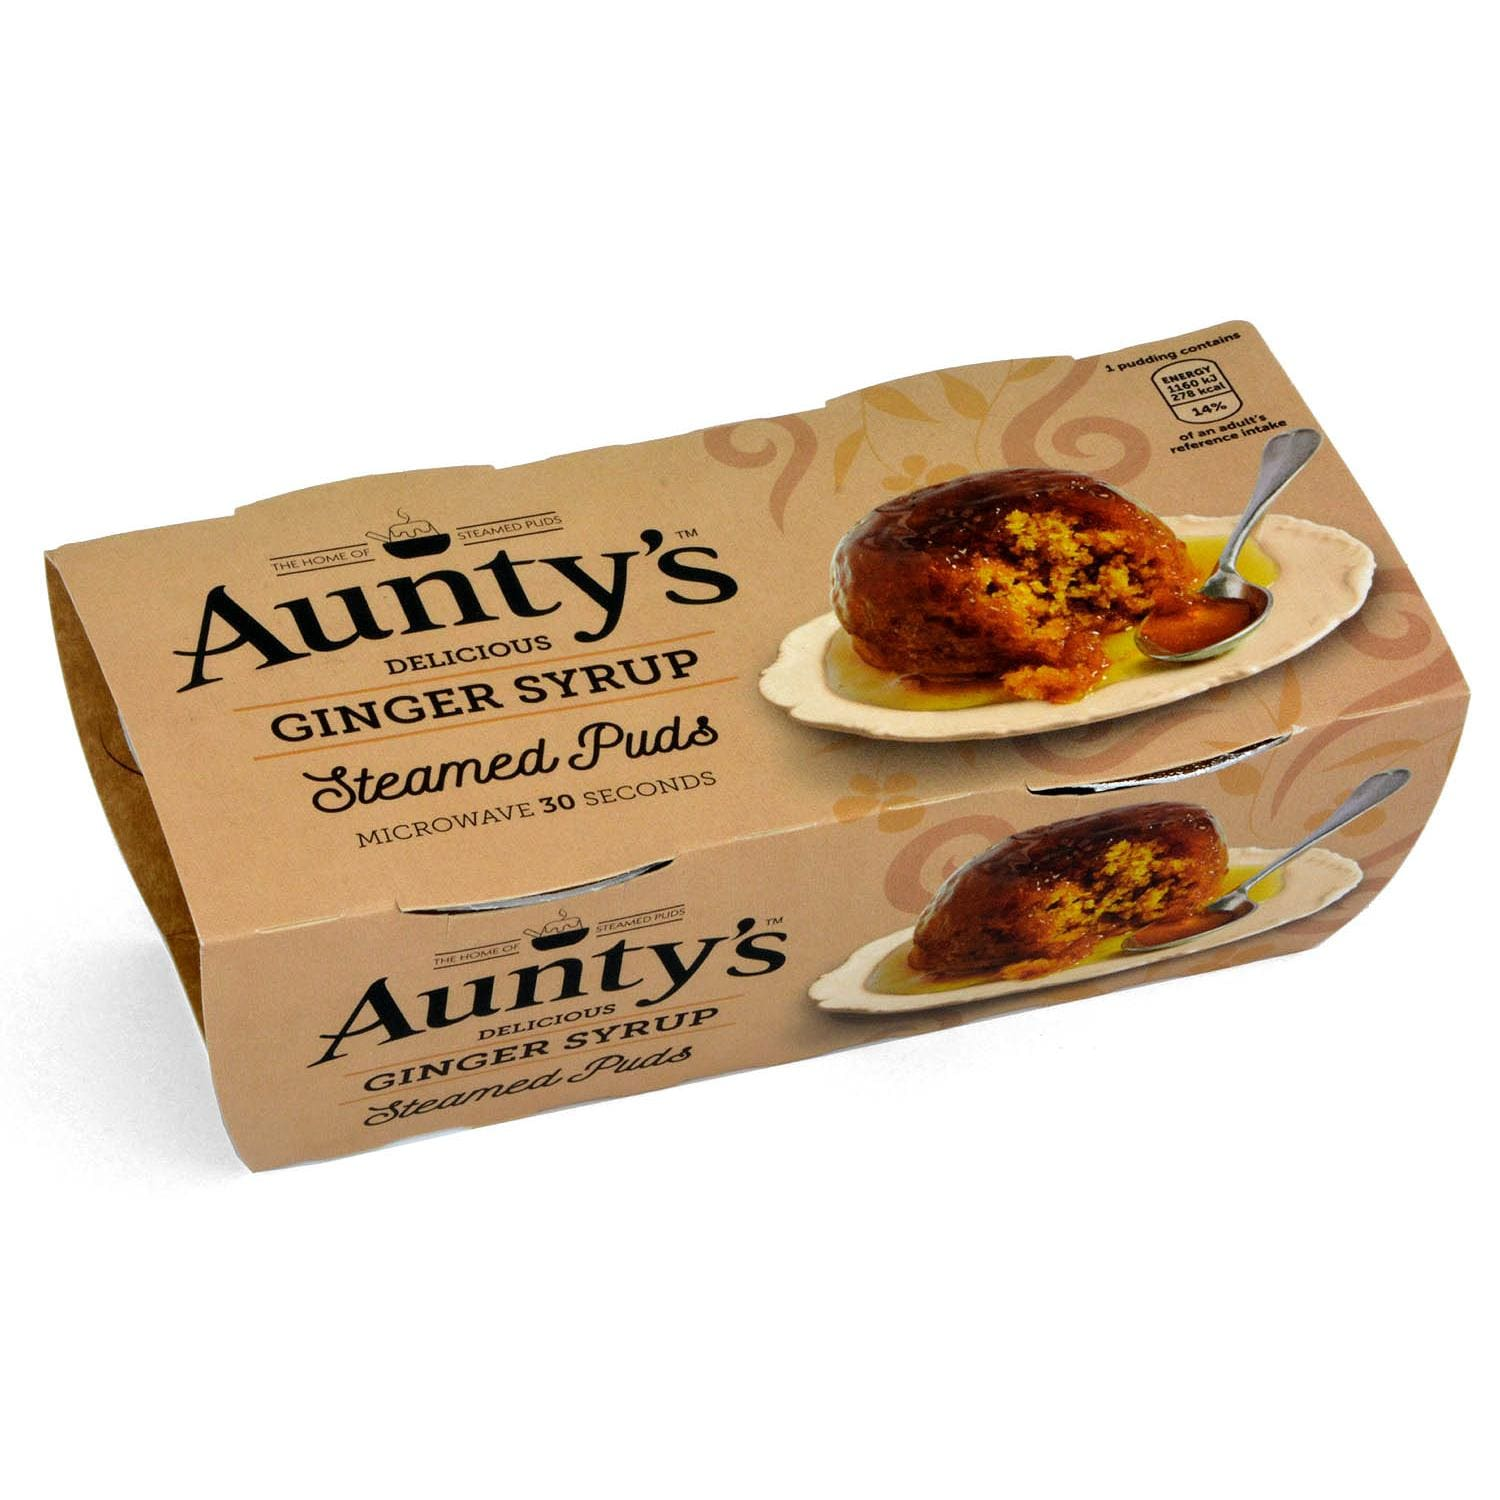 Aunty´s Ginger Syrup Sauce Steamed Puddings - Kuchen mit Ingwer-Sirup